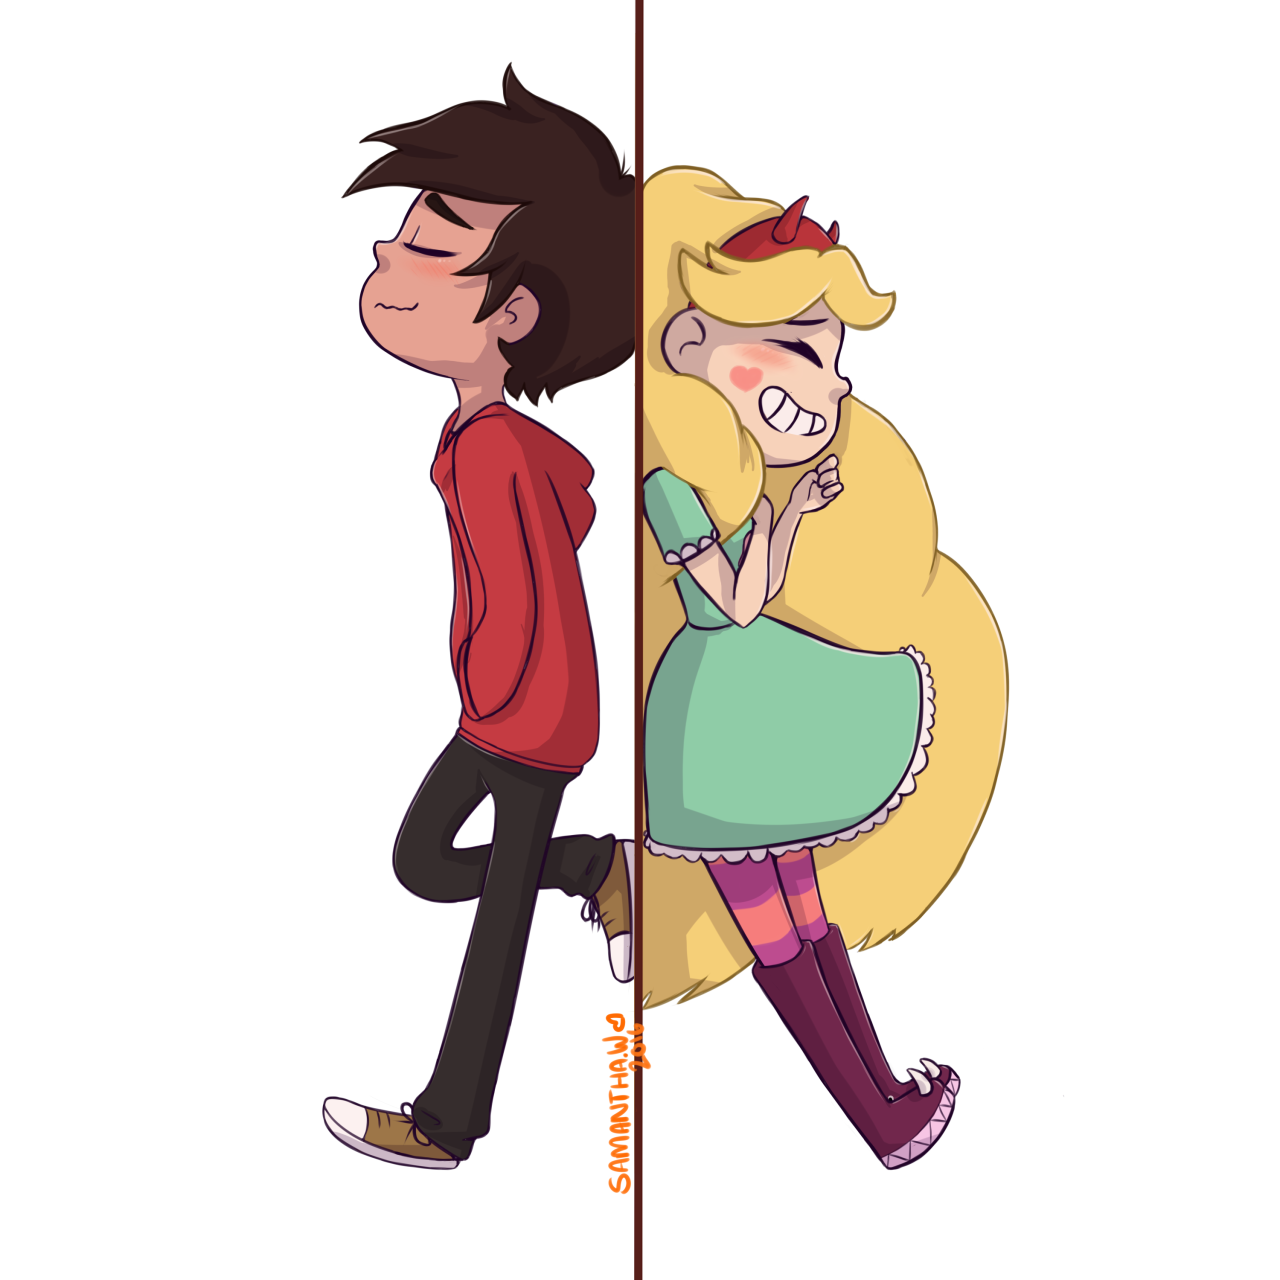 Starco Tumblr Star Vs The Forces Star Vs The Forces Of Evil Starco